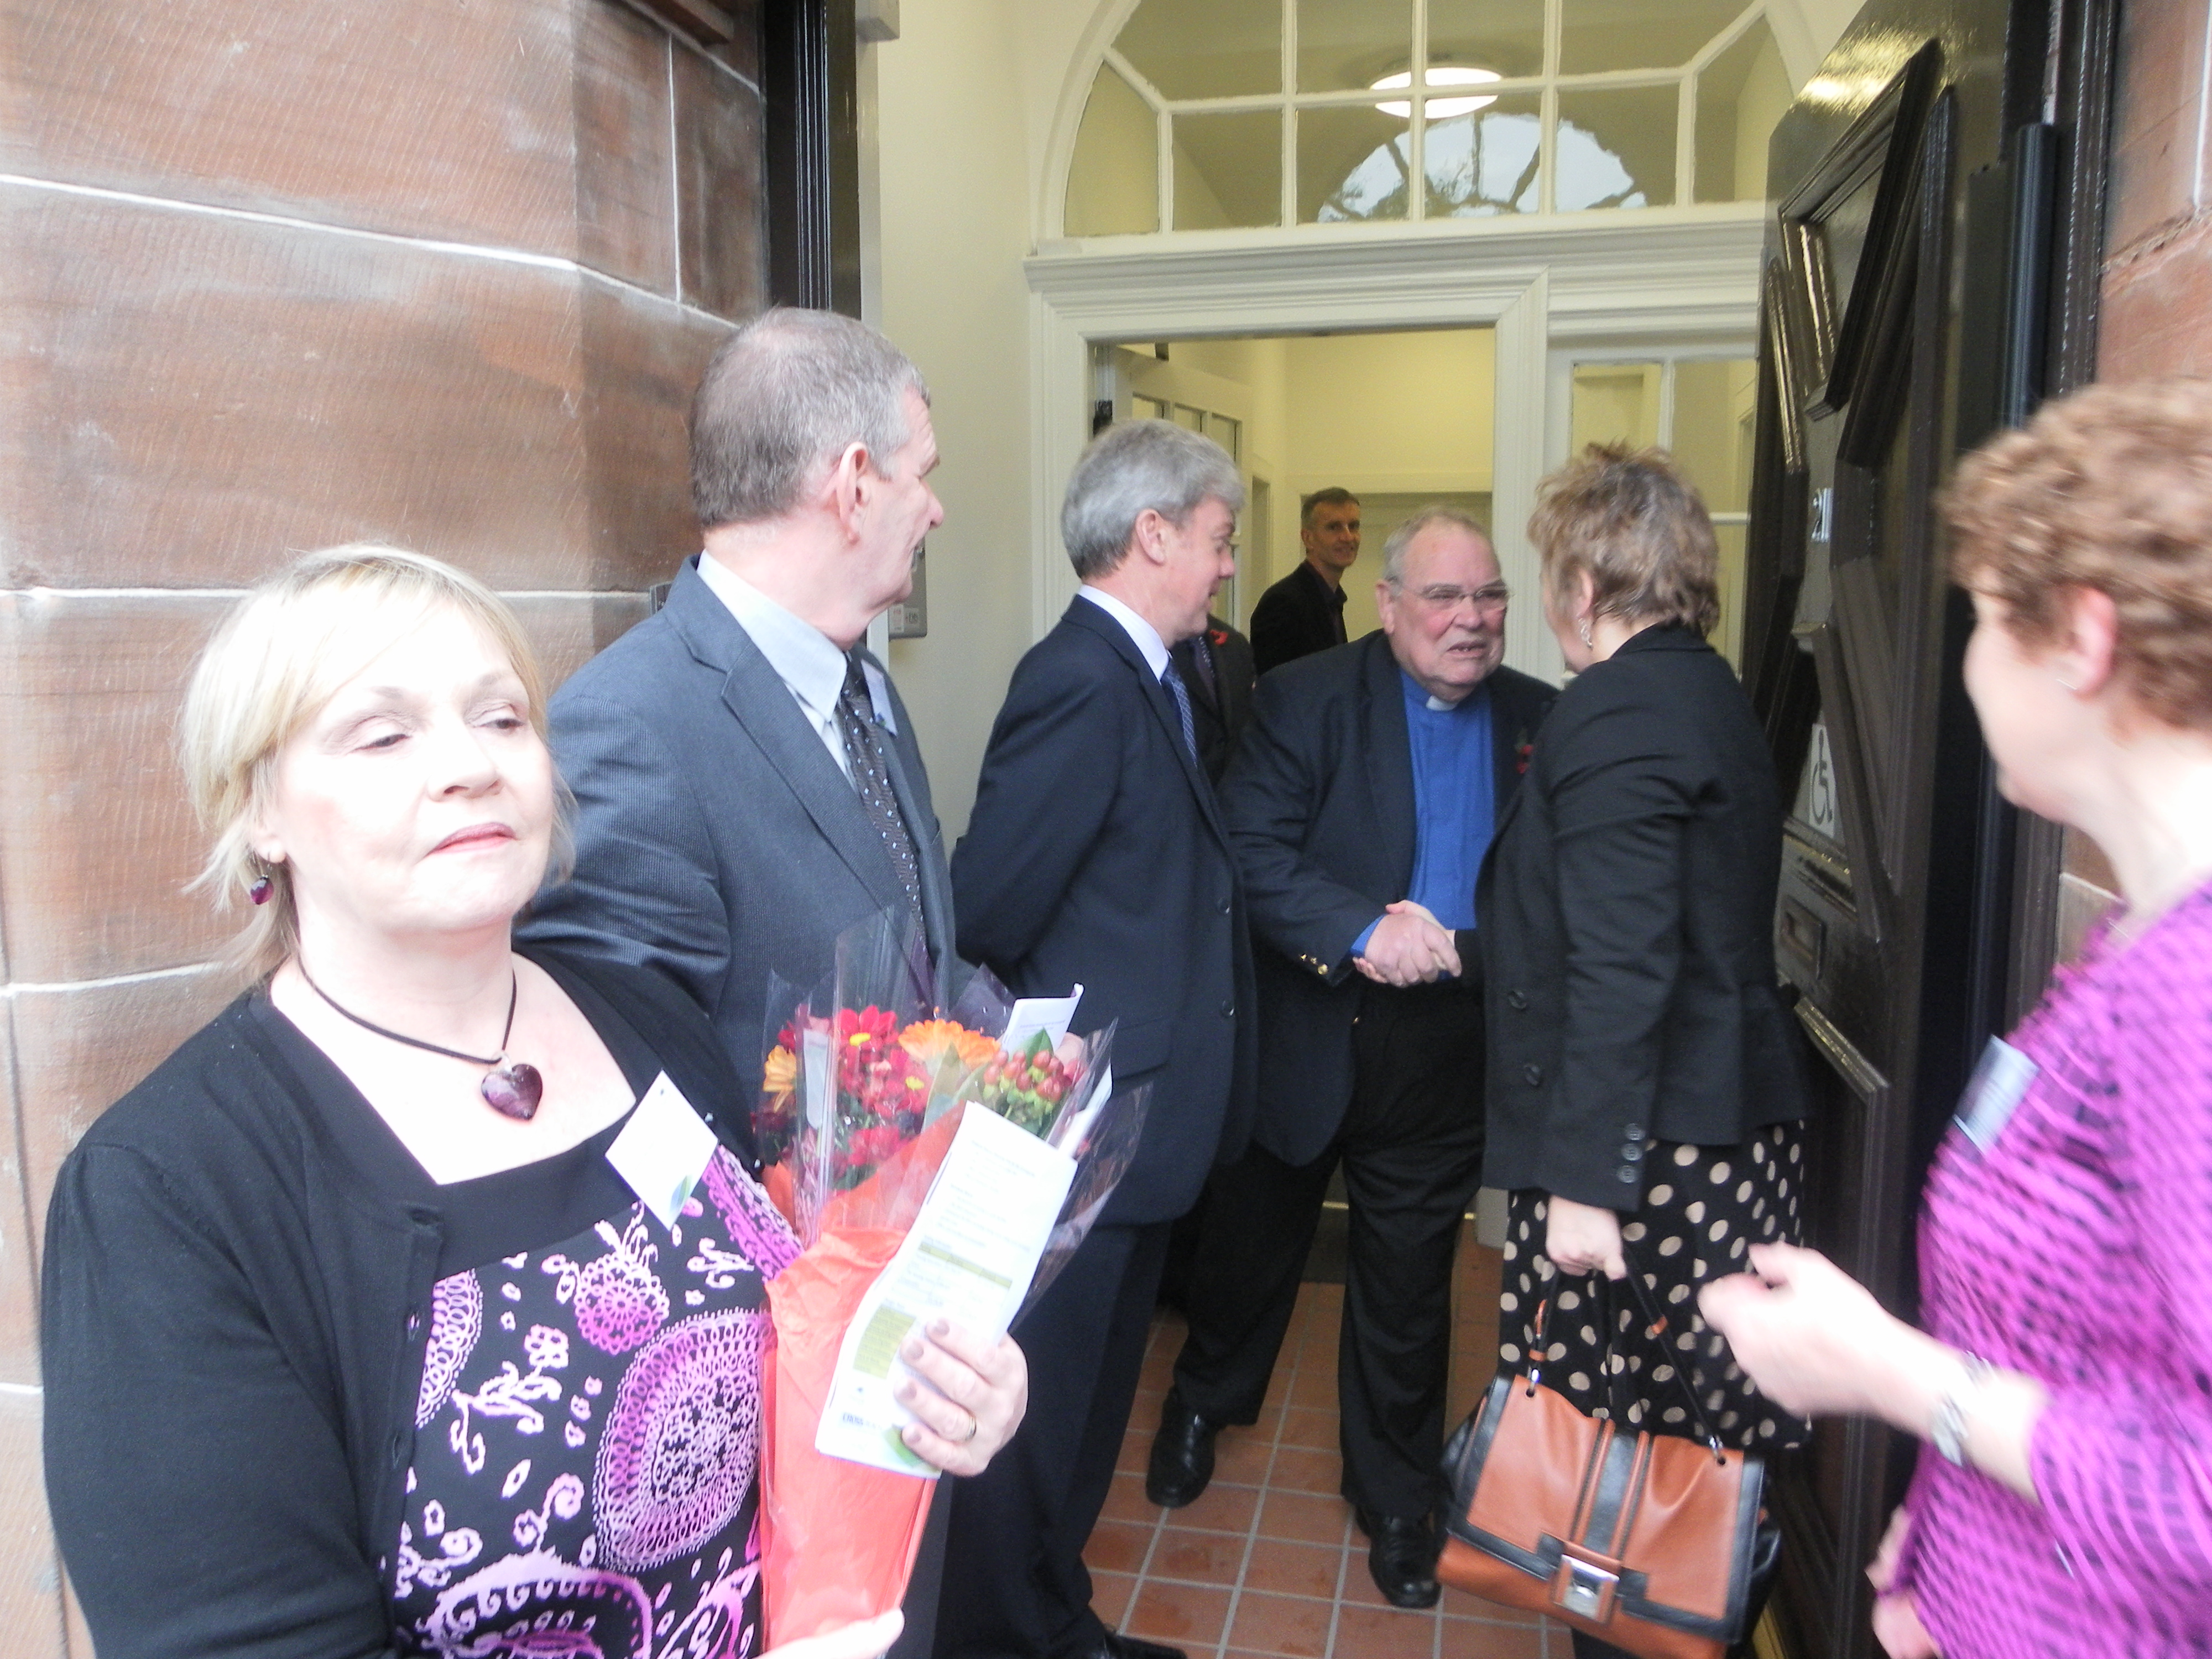 - Roseanna Cunningham MSP is introduced to the offical party